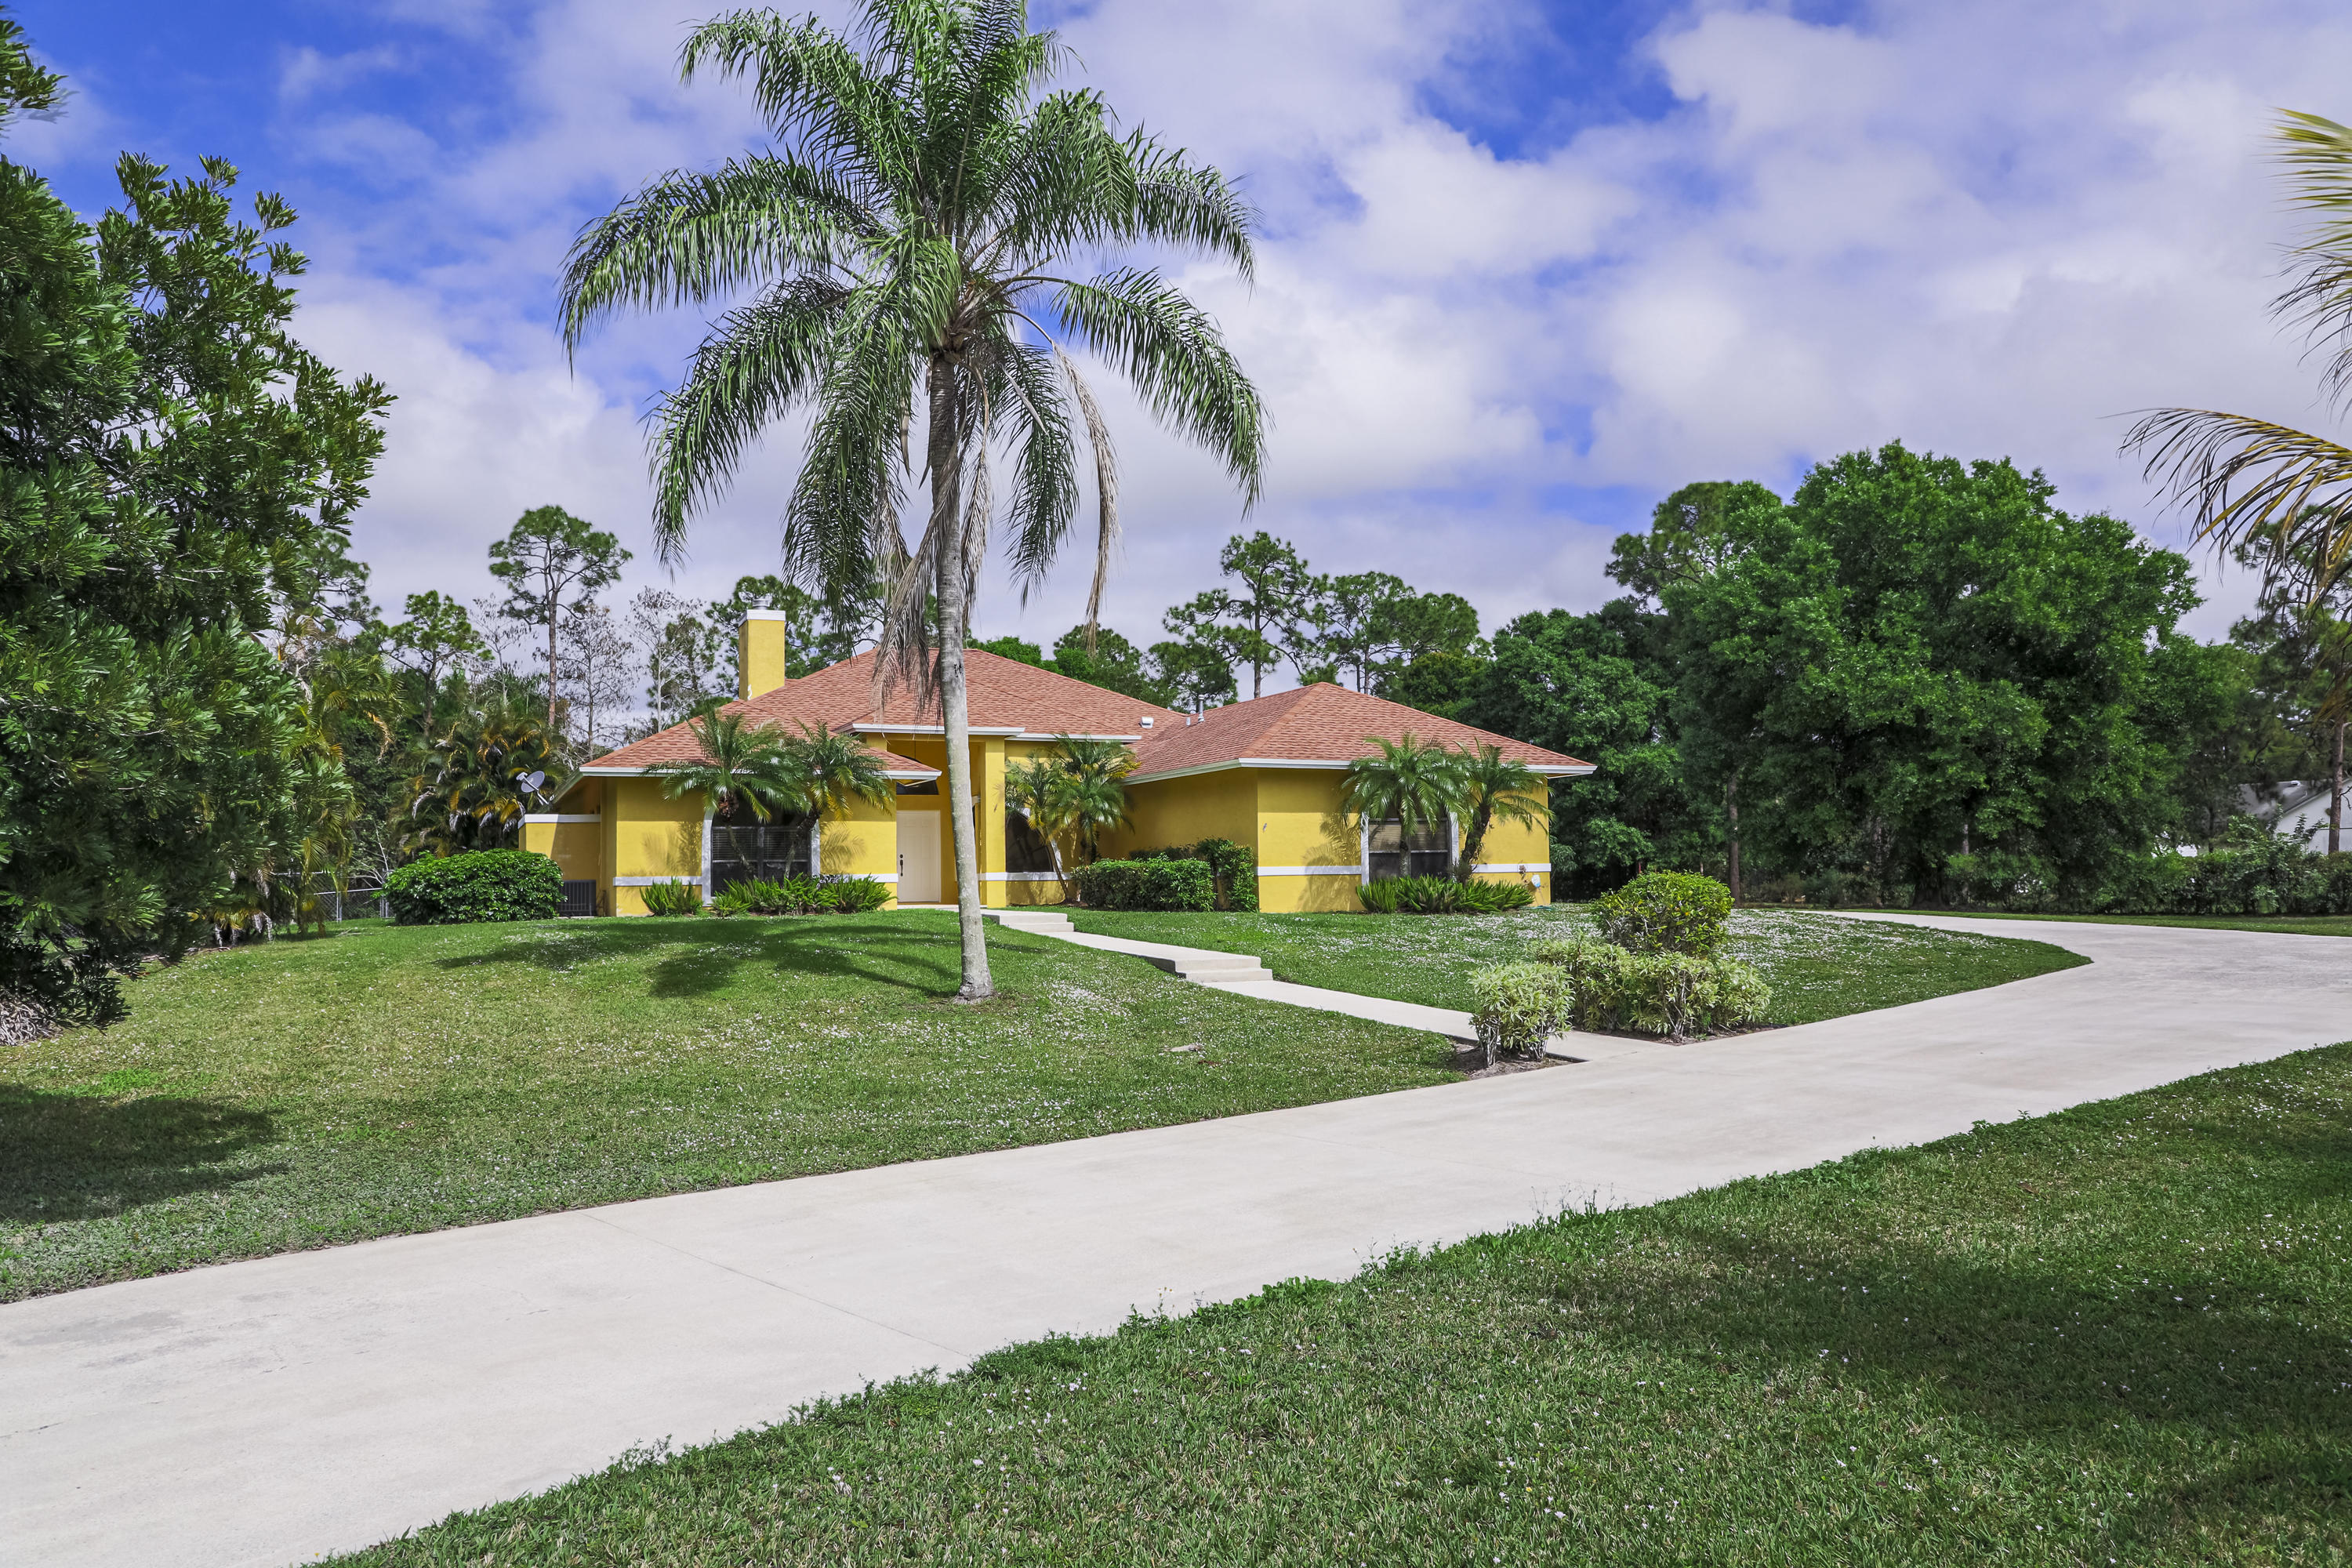 14915 Snail Trail, Loxahatchee in Palm Beach County, FL 33470 Home for Sale